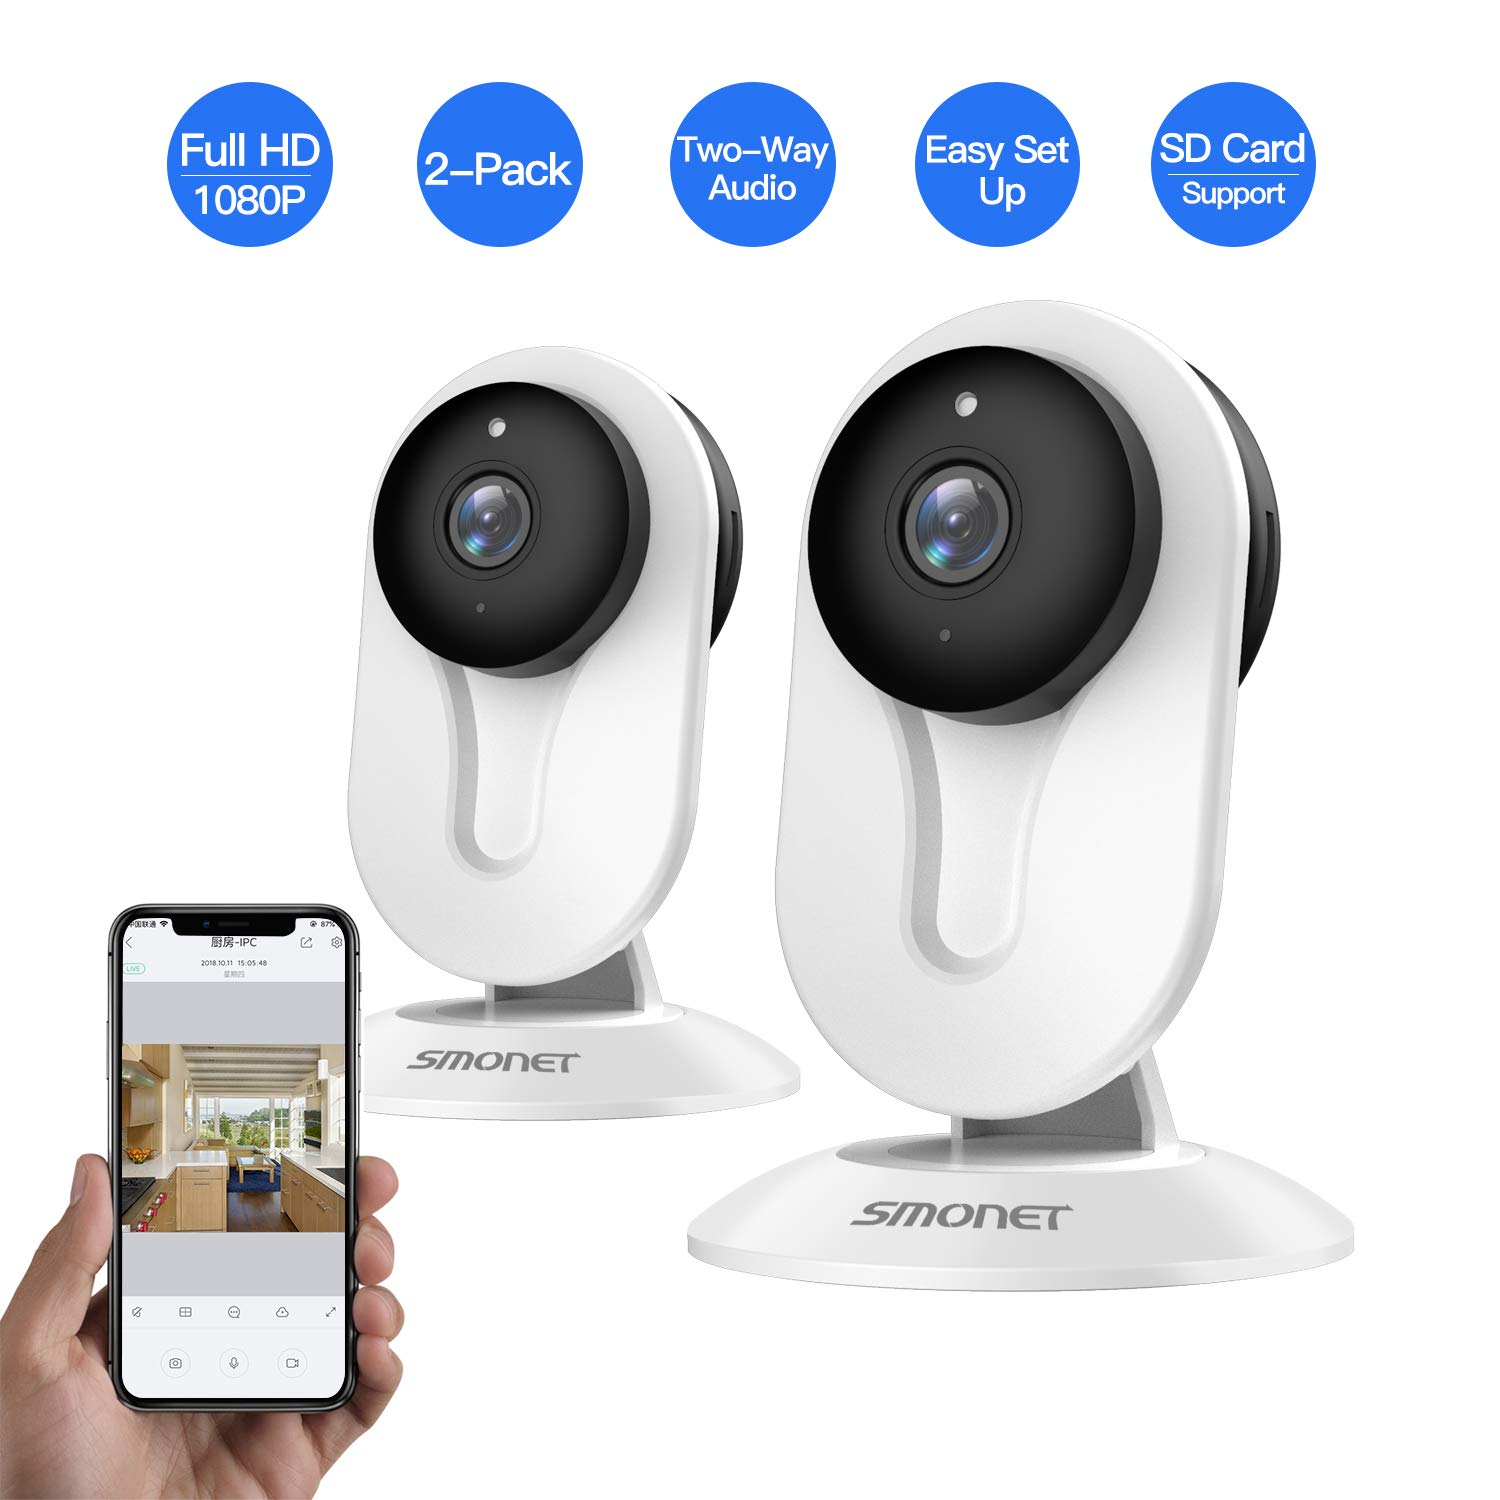 SMONET IP Security Camera, Home Security Camera Wireless with Two-Way Audio, Night Vision, Full HD 1080P 2.0 Mega-Pixel Indoor Surveillance Camera for Elder/Baby/Nanny/Pet Monitor (White,2 Packs) by SMONET